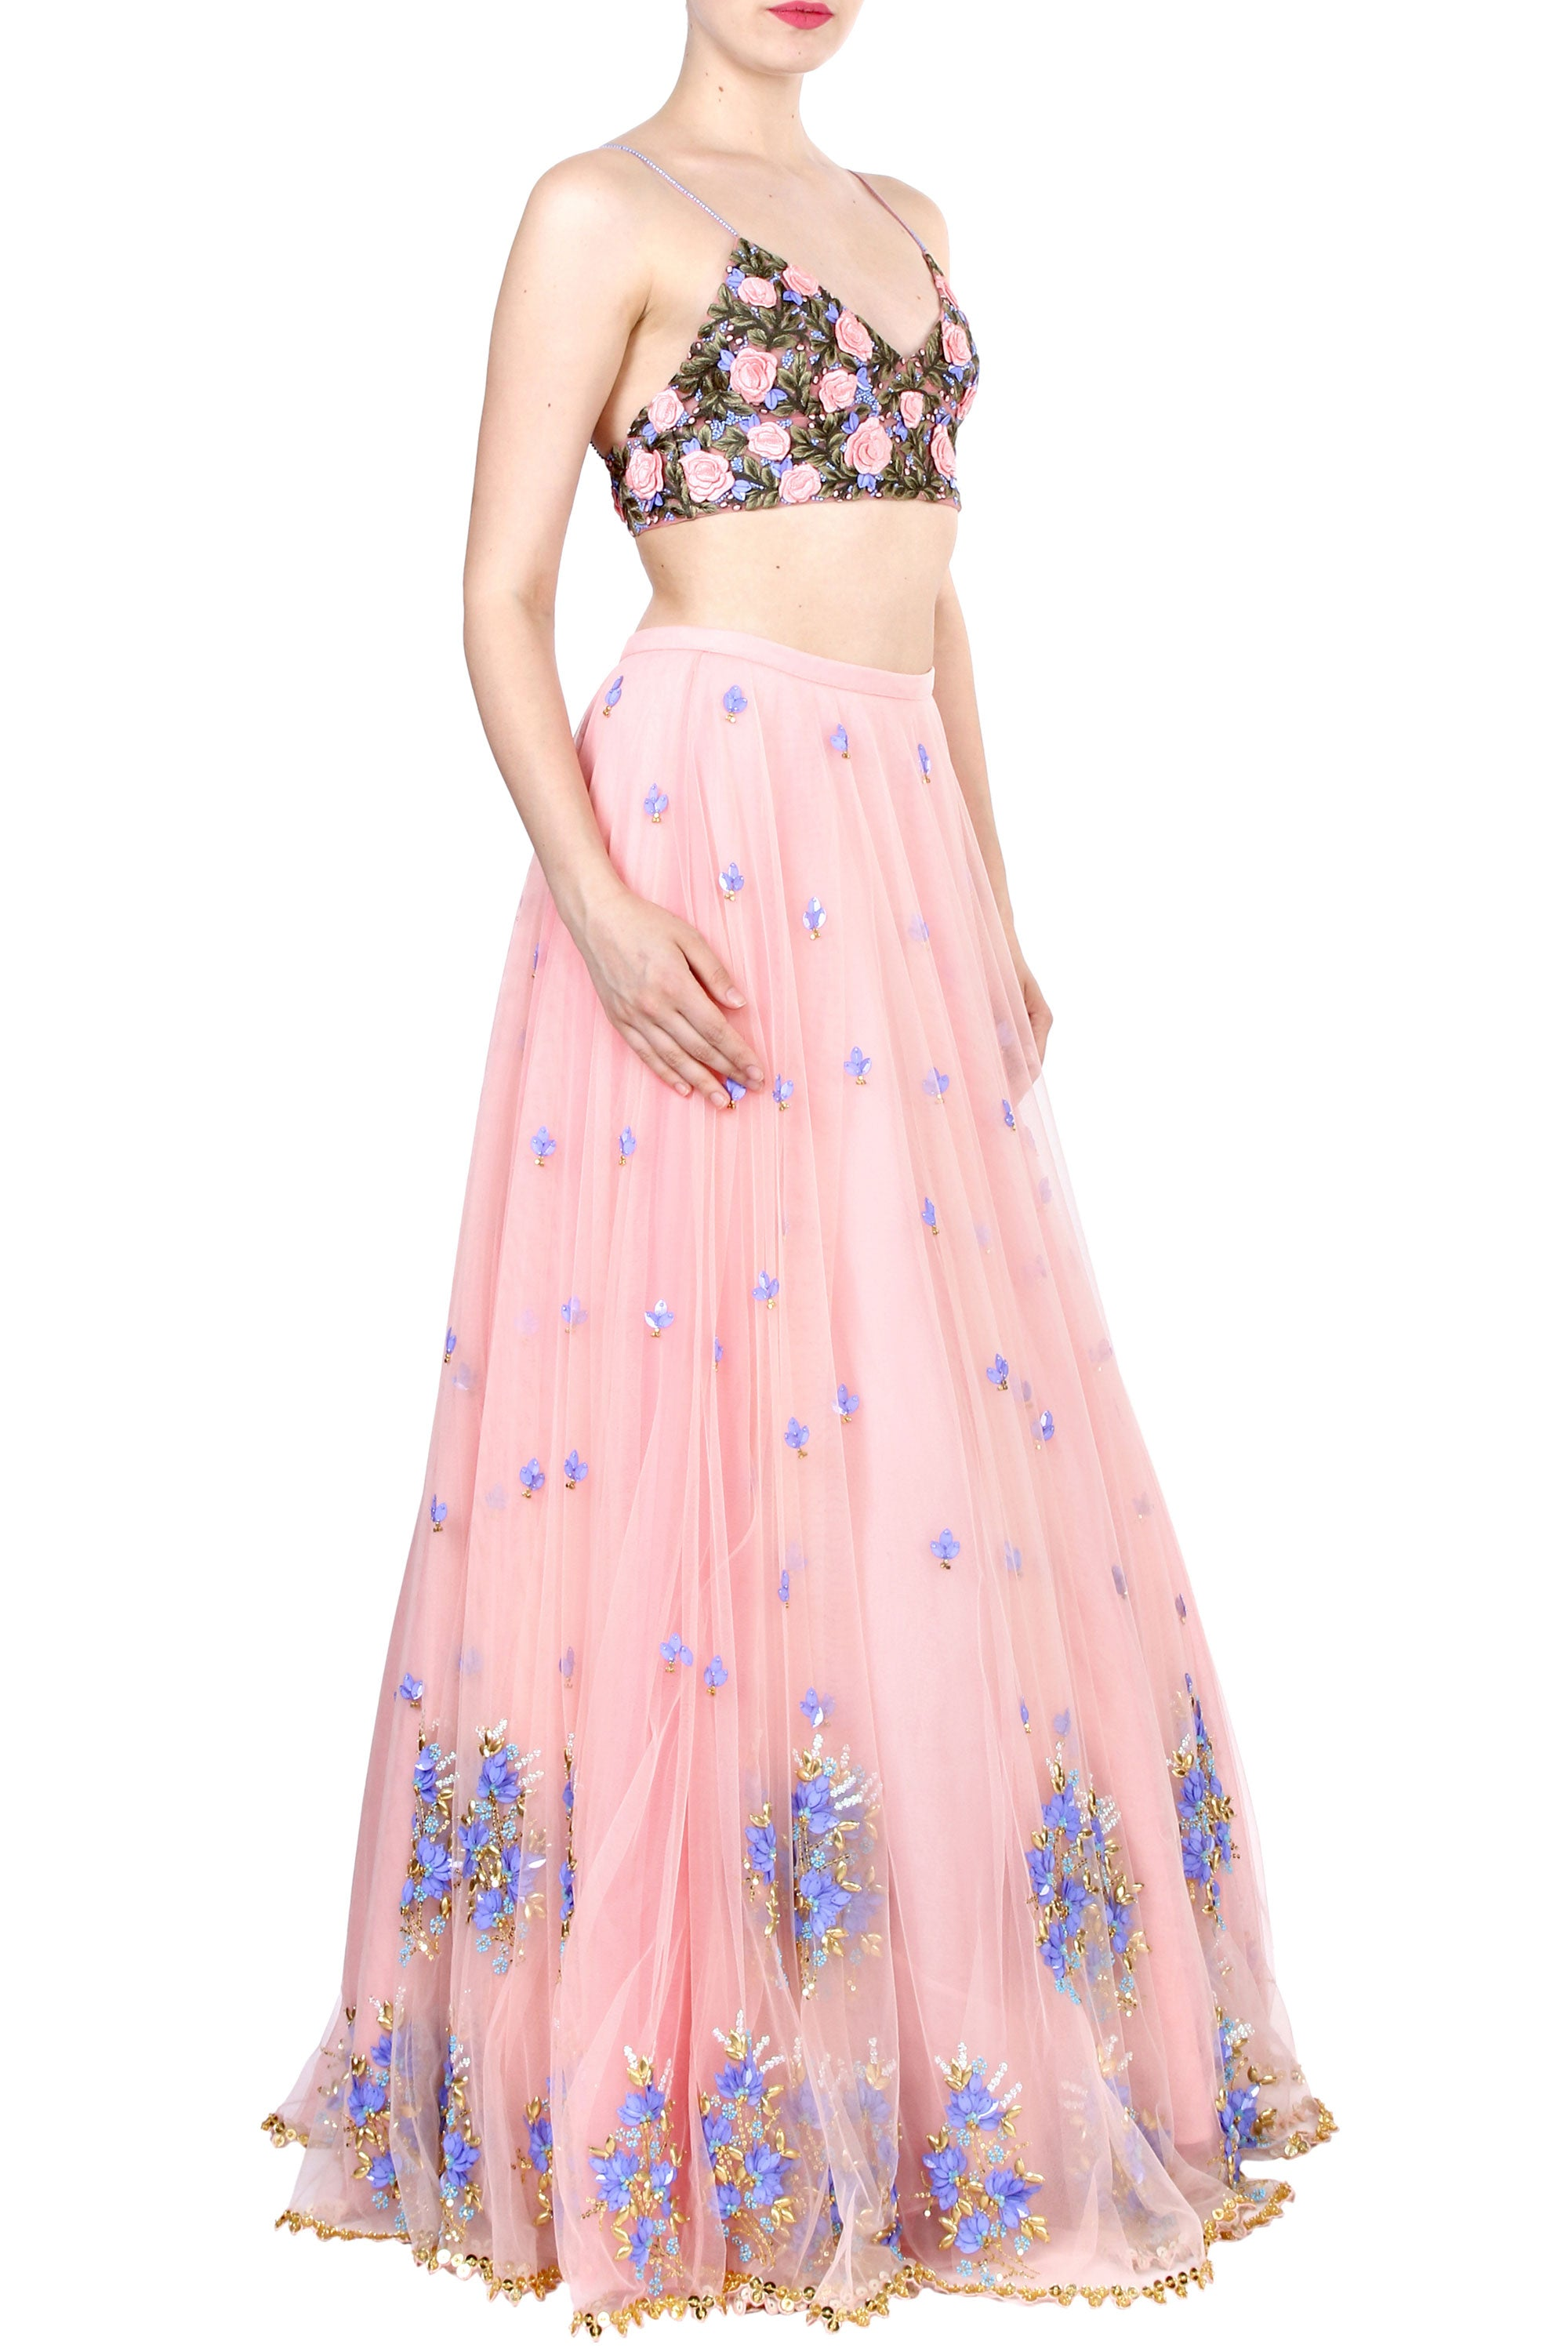 Floral Embroidery Blush Tulle Skirt Set Side